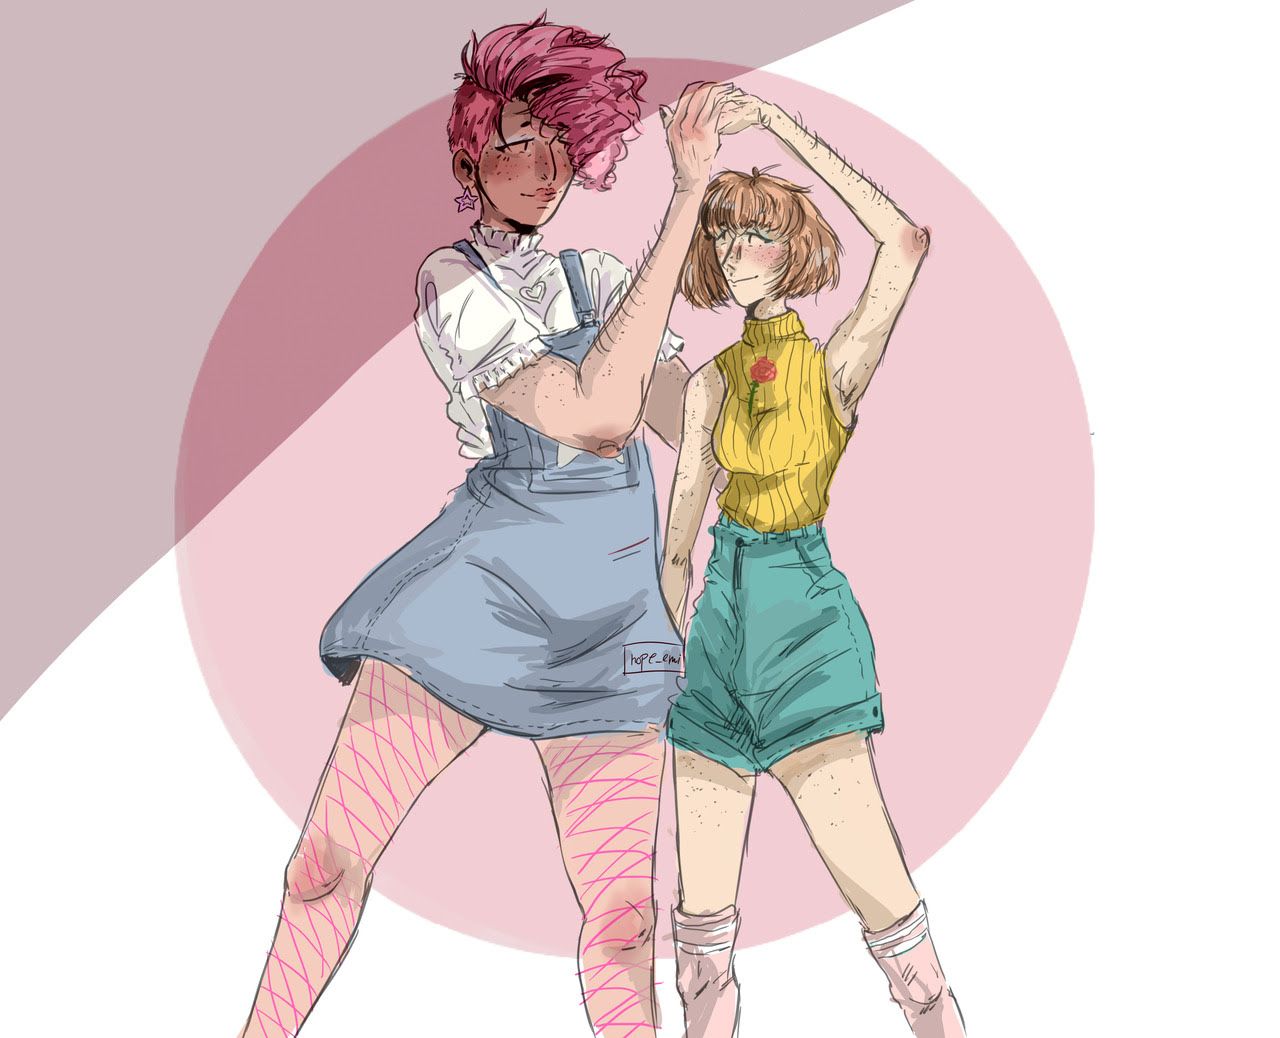 steven universe au where rose and pearl are modern 2018 teen lesbians and im crying more